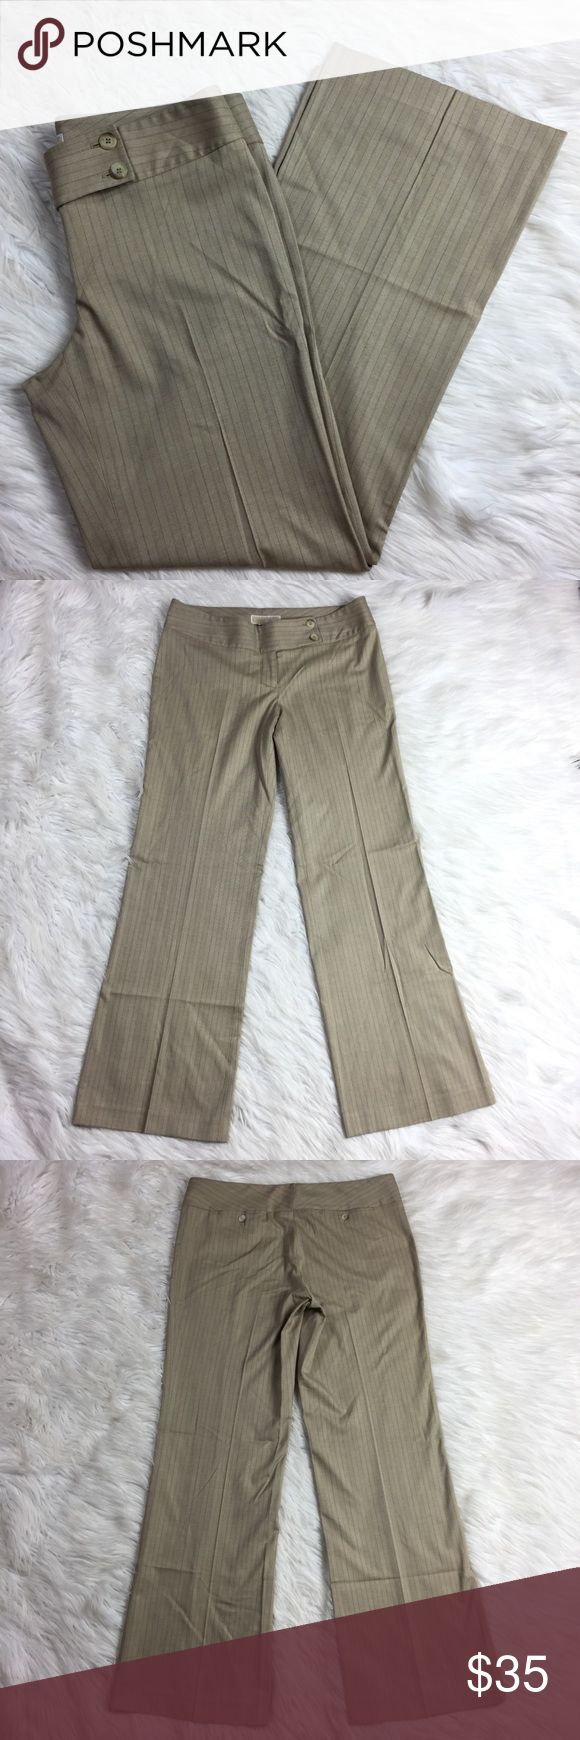 """•• Michael Kors Trousers • Light Beige Dress Pants MK pants in excellent condition overall. Only worn twice. The cut of these pants make them so flattering and comfortable on. They would be great paired with your favorite cotton shirt or even a gorgeous blouse. They have a subtle pinstripe to them when the light hits them.  Measurements (approx) Inseam: 32"""" Waist (Flat Lay): 17""""  Coming from a smoke free pet free home. (LLR2-0541) Michael Kors Pants Trousers"""